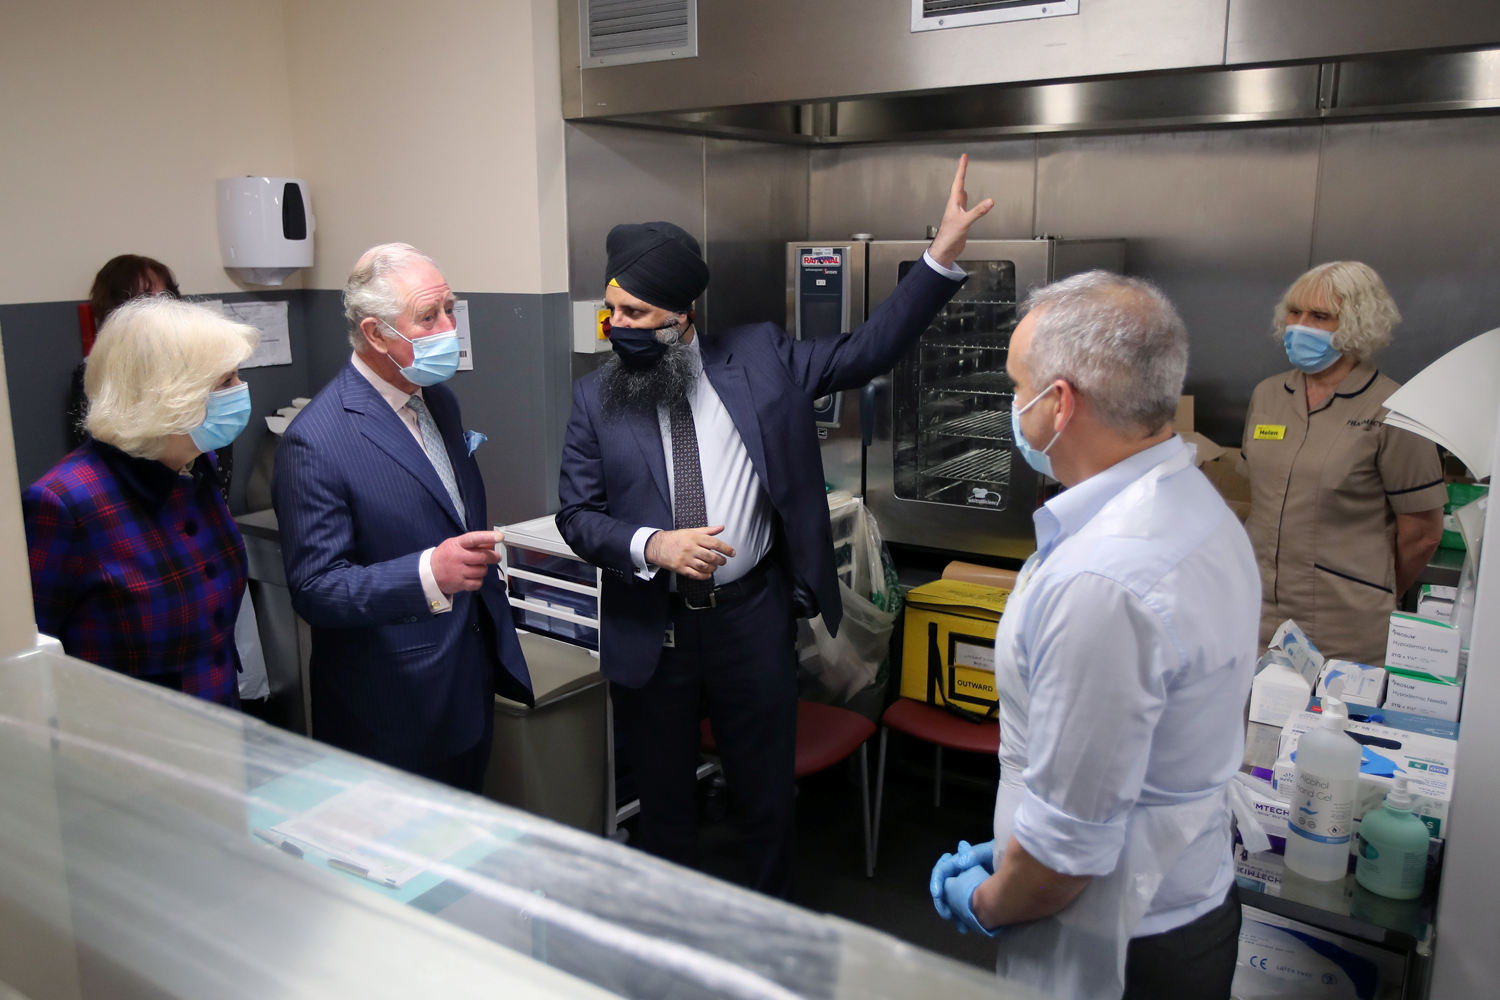 Prince Charles, Prince of Wales and Camilla, Duchess of Cornwall talk with Chief Pharmacist Inderjit Singh during a visit to The Queen Elizabeth Hospital